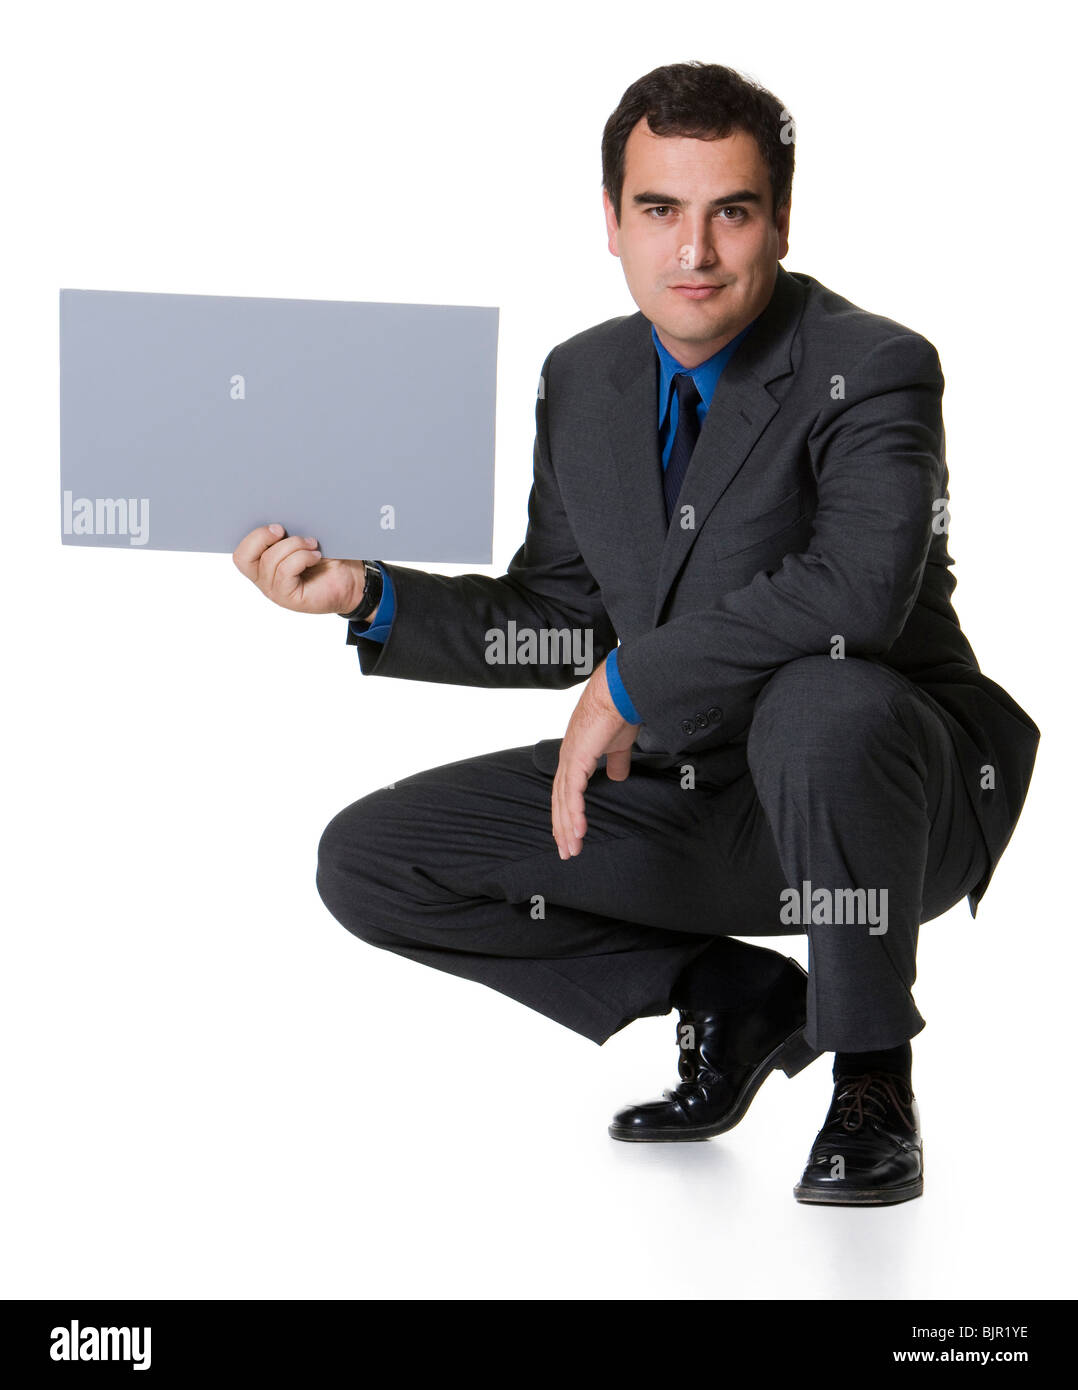 Businessman with blank sign - Stock Image